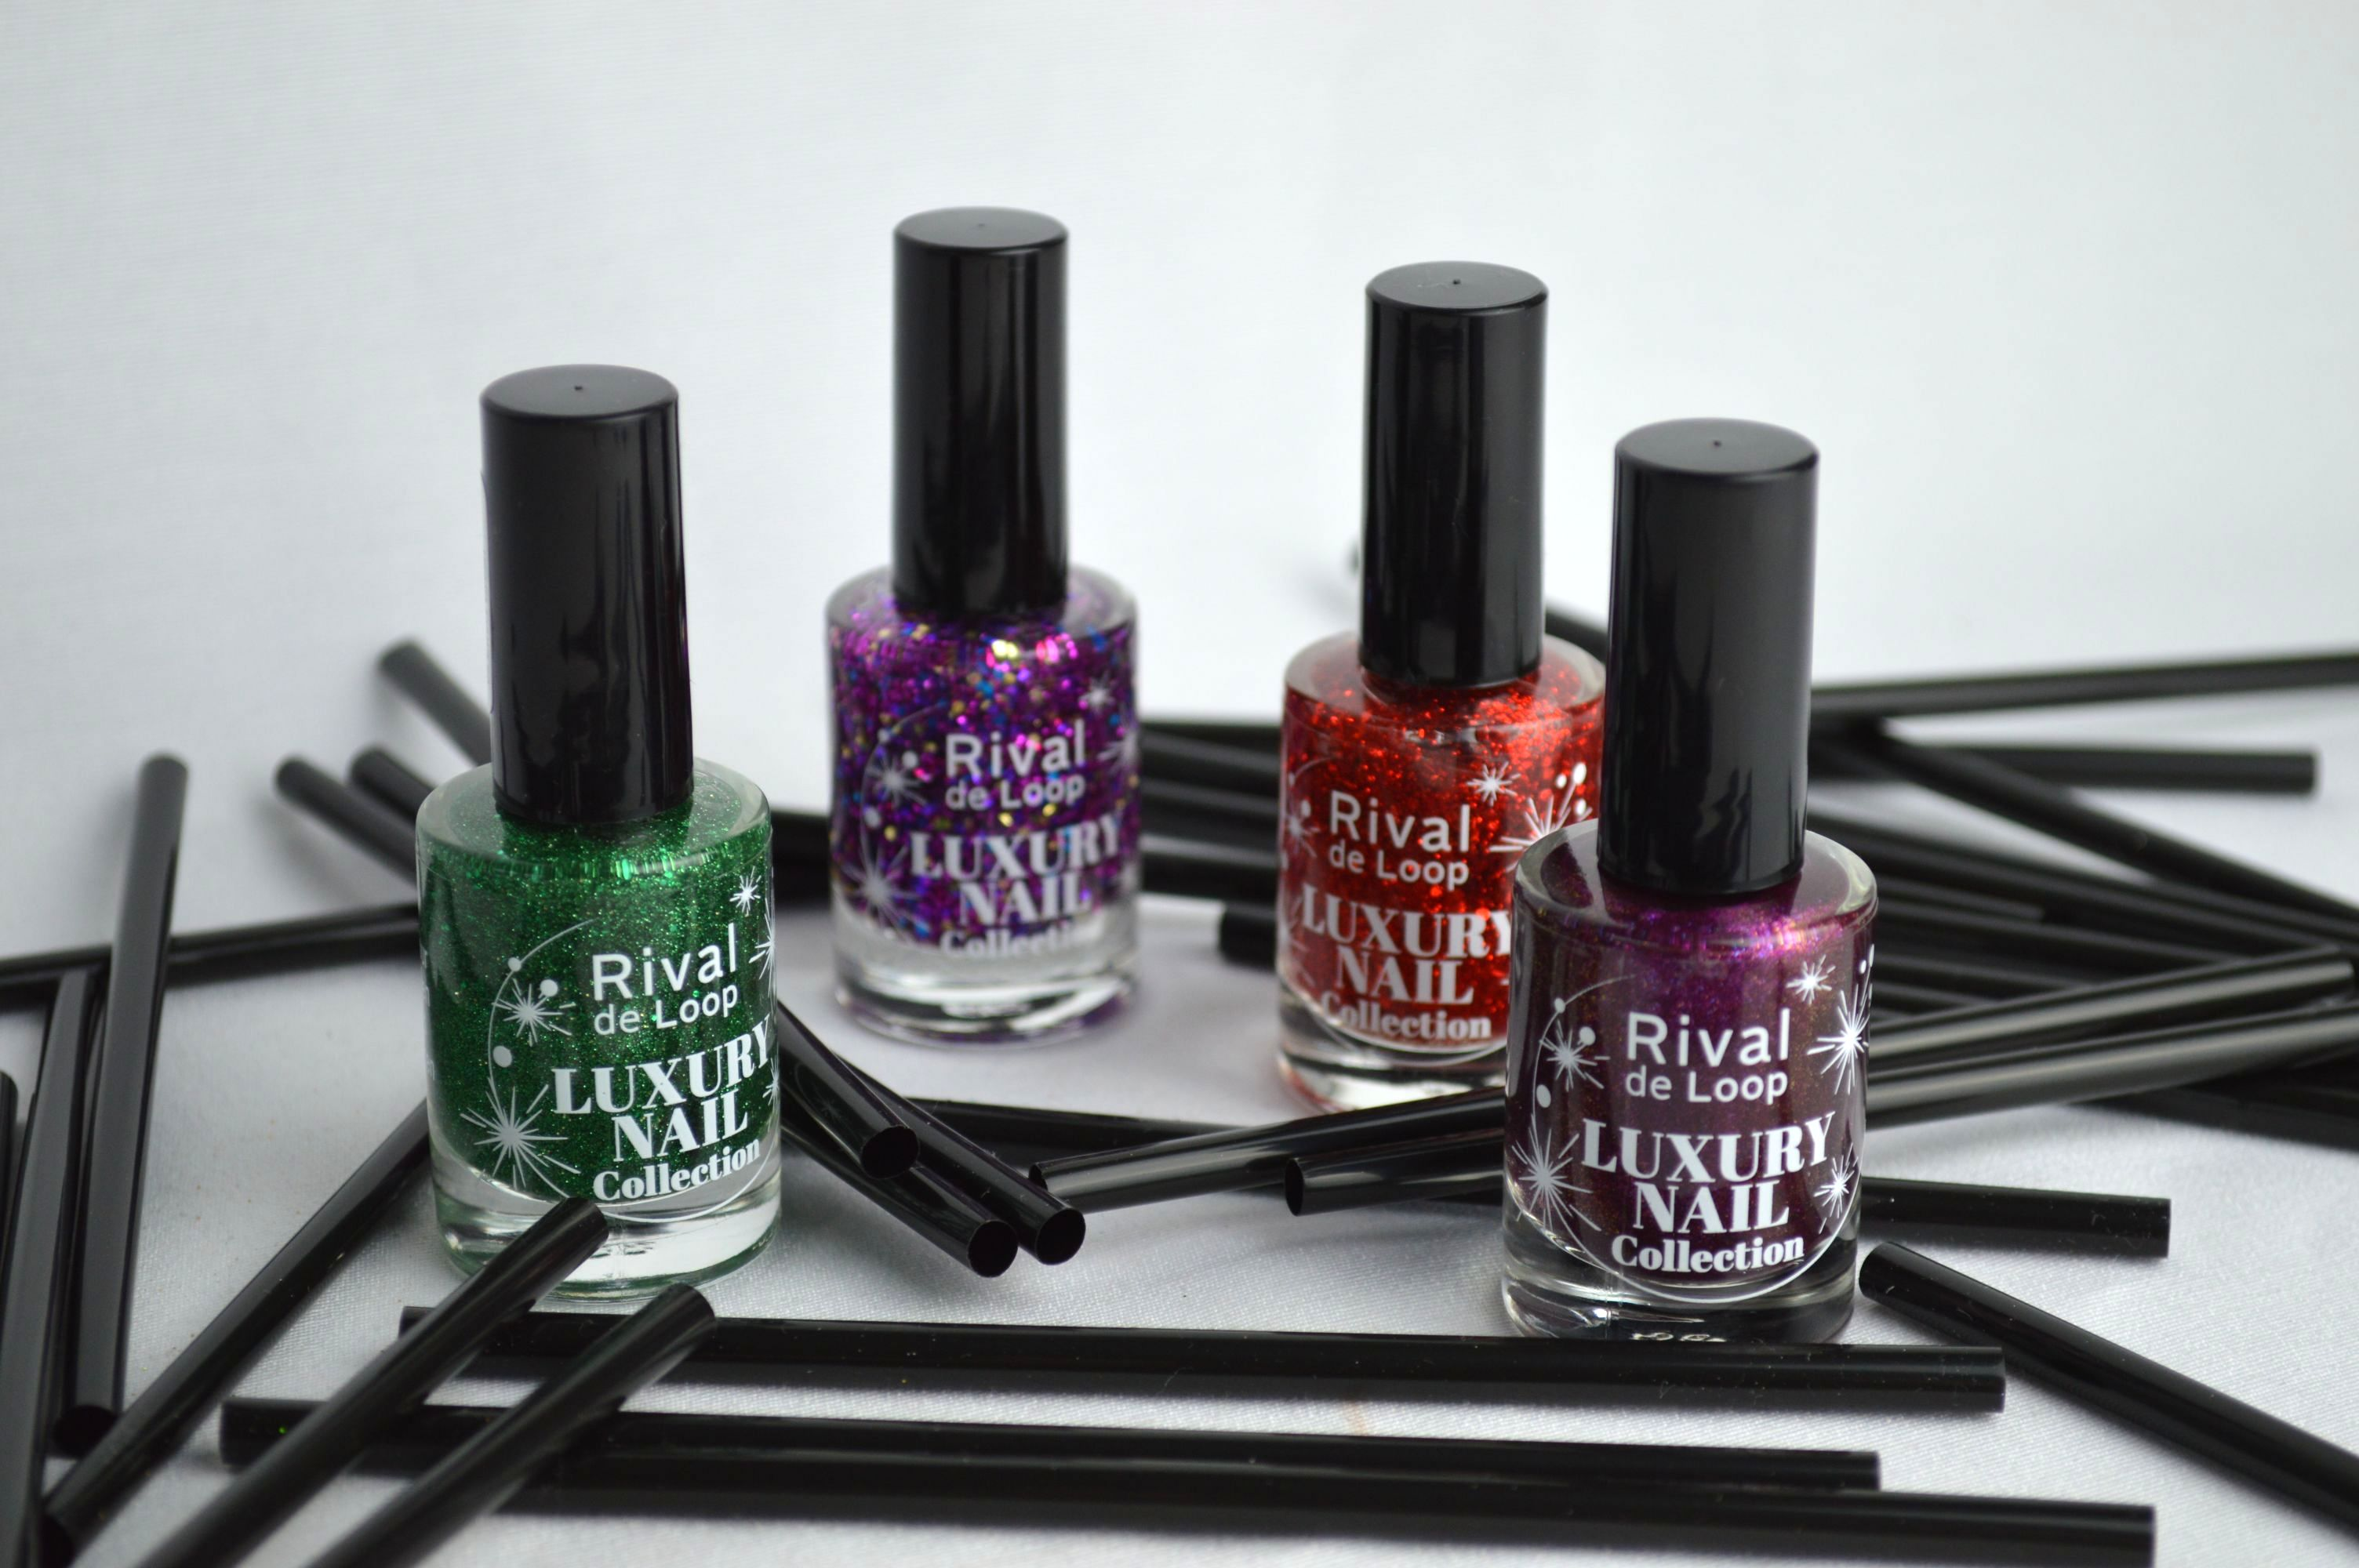 Rival de Loop Luxury Nail Collection